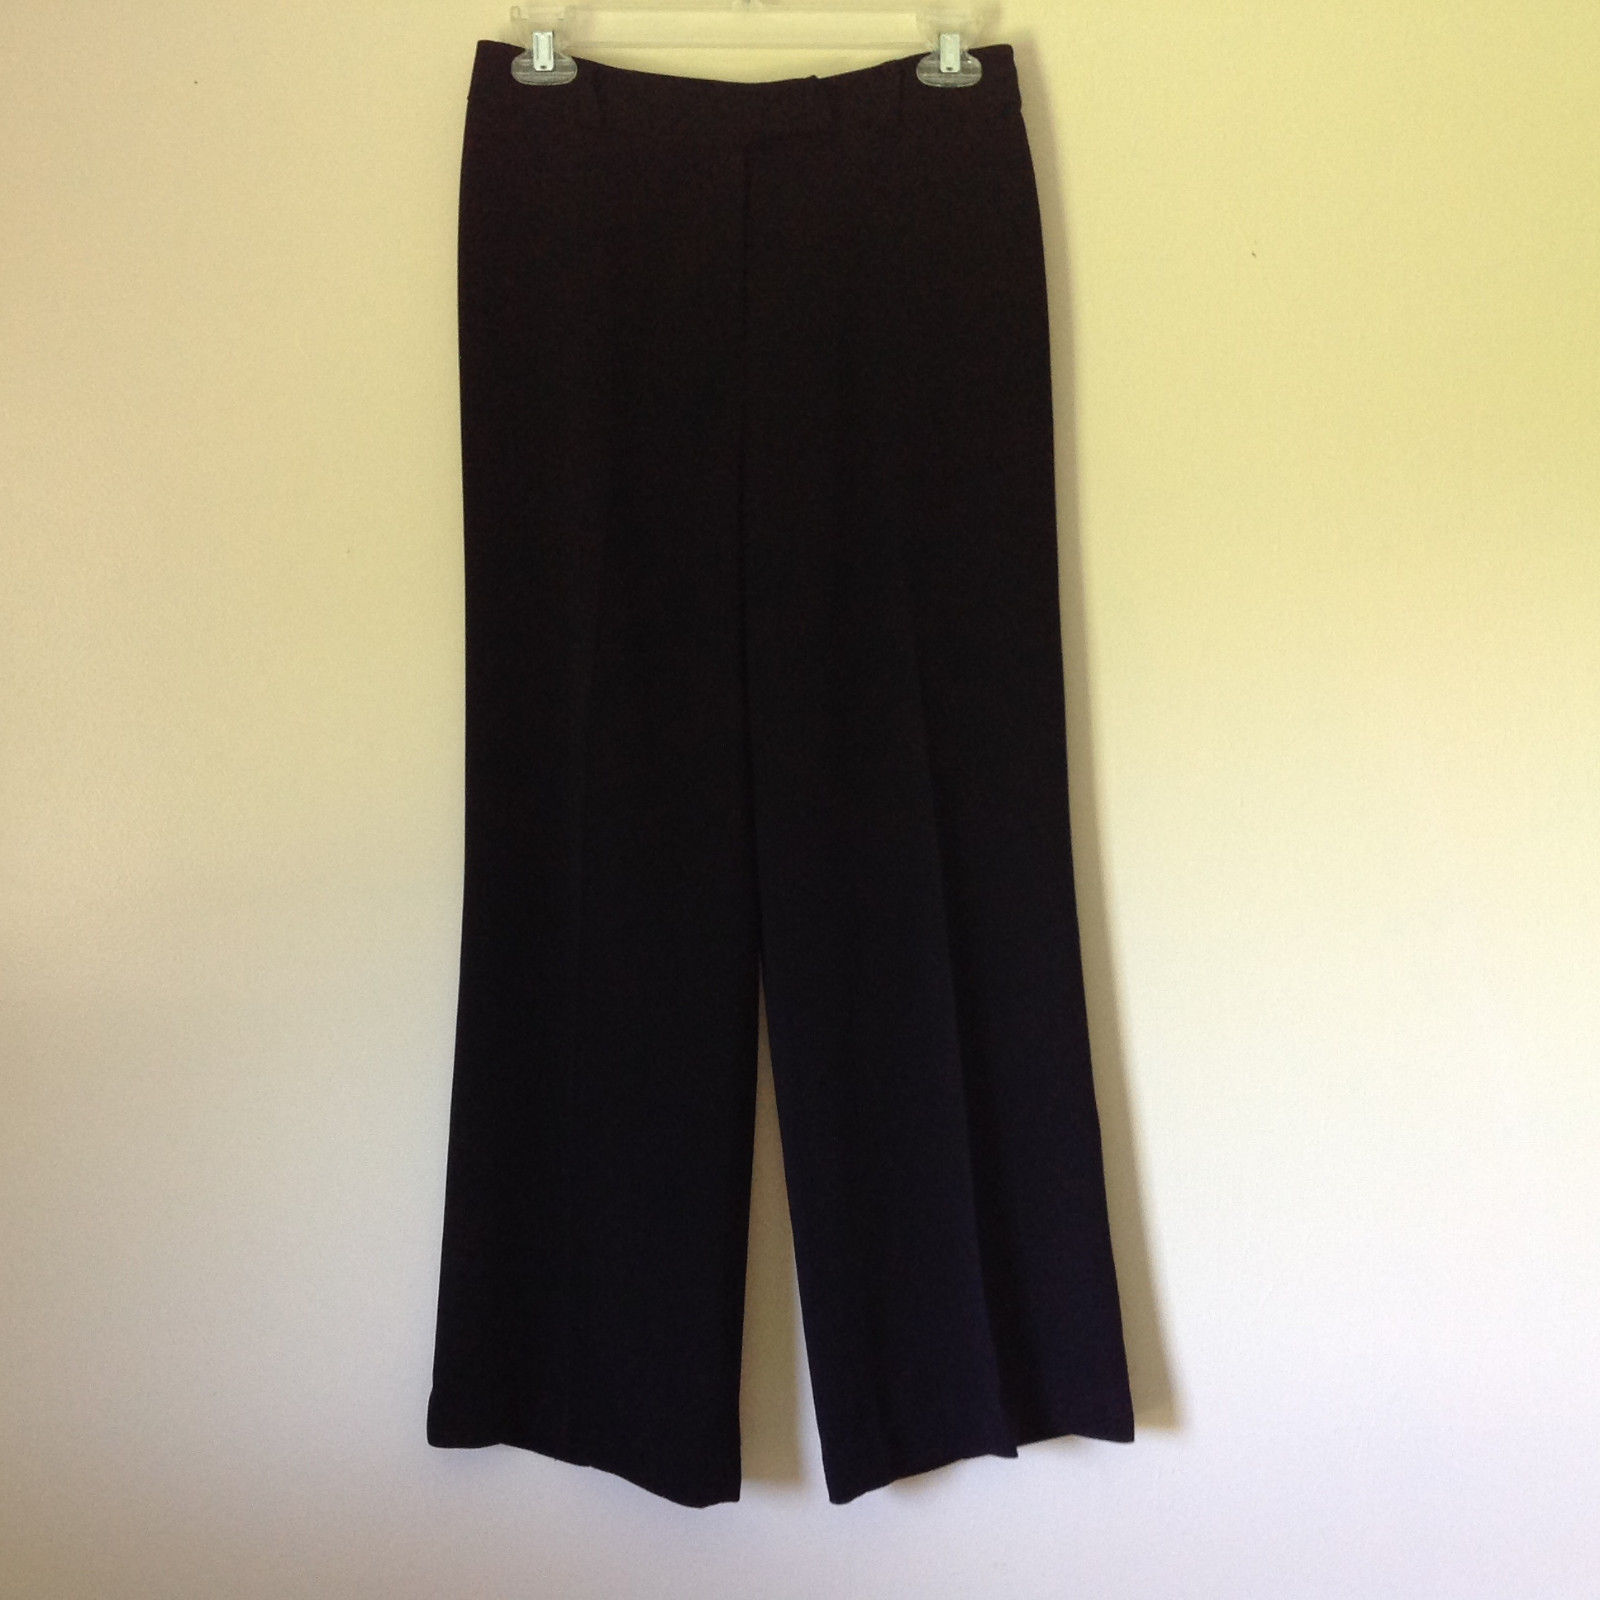 Attractive Anne Brooks Black Dress Pants 100 Percent Polyester Petite Size 10